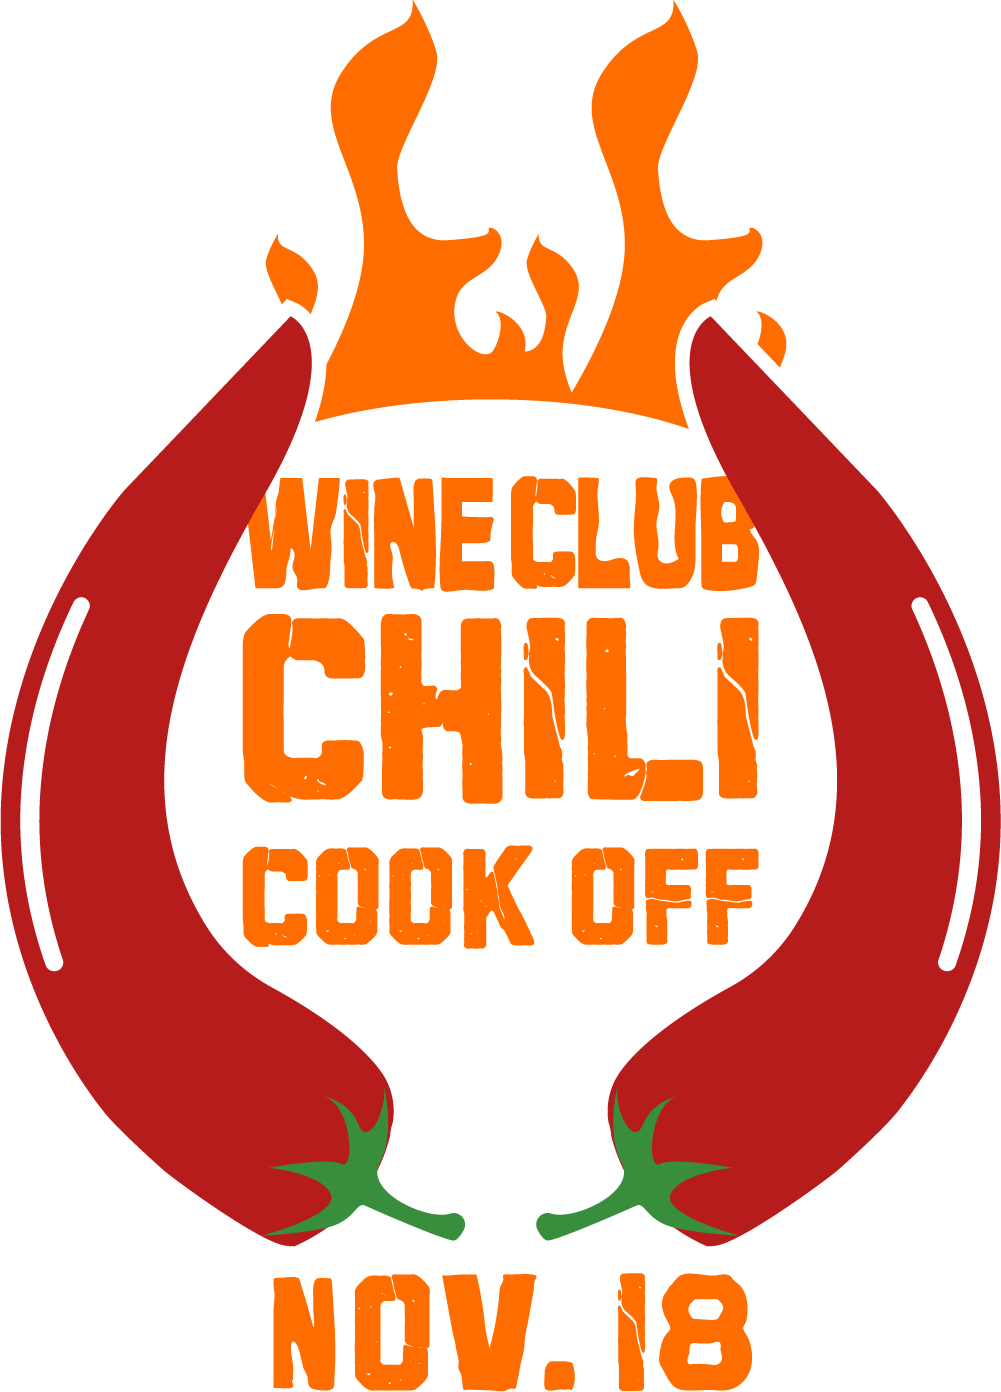 wine club chili cook off